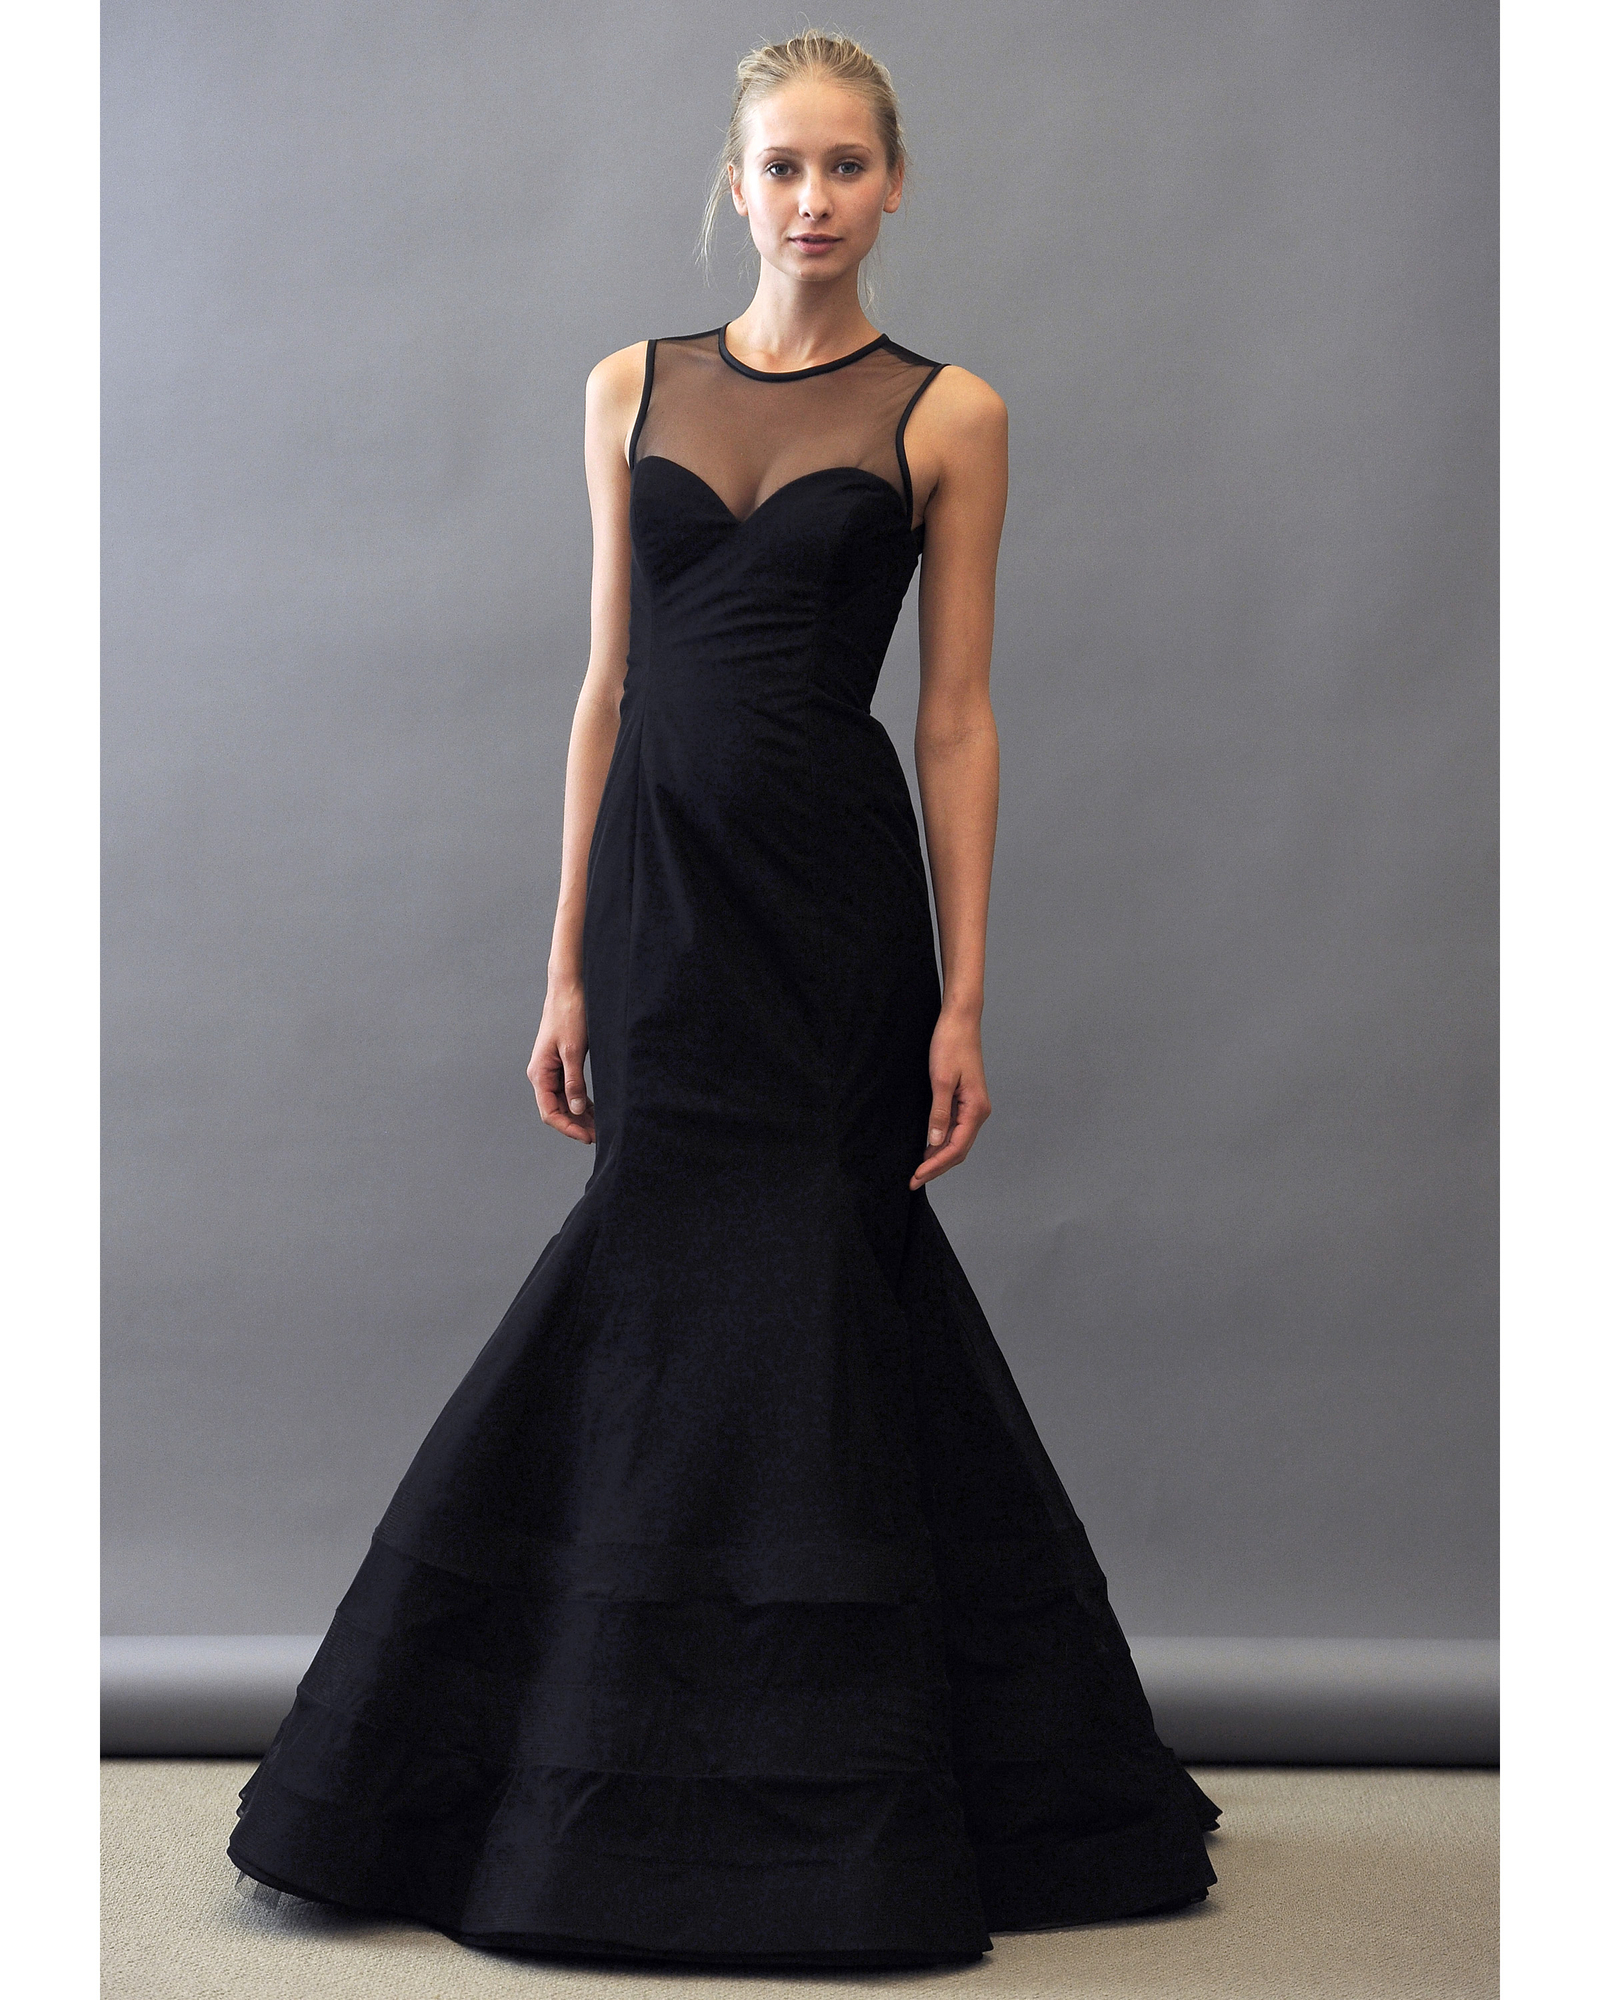 Trumpet Bridesmaid Dress in Black